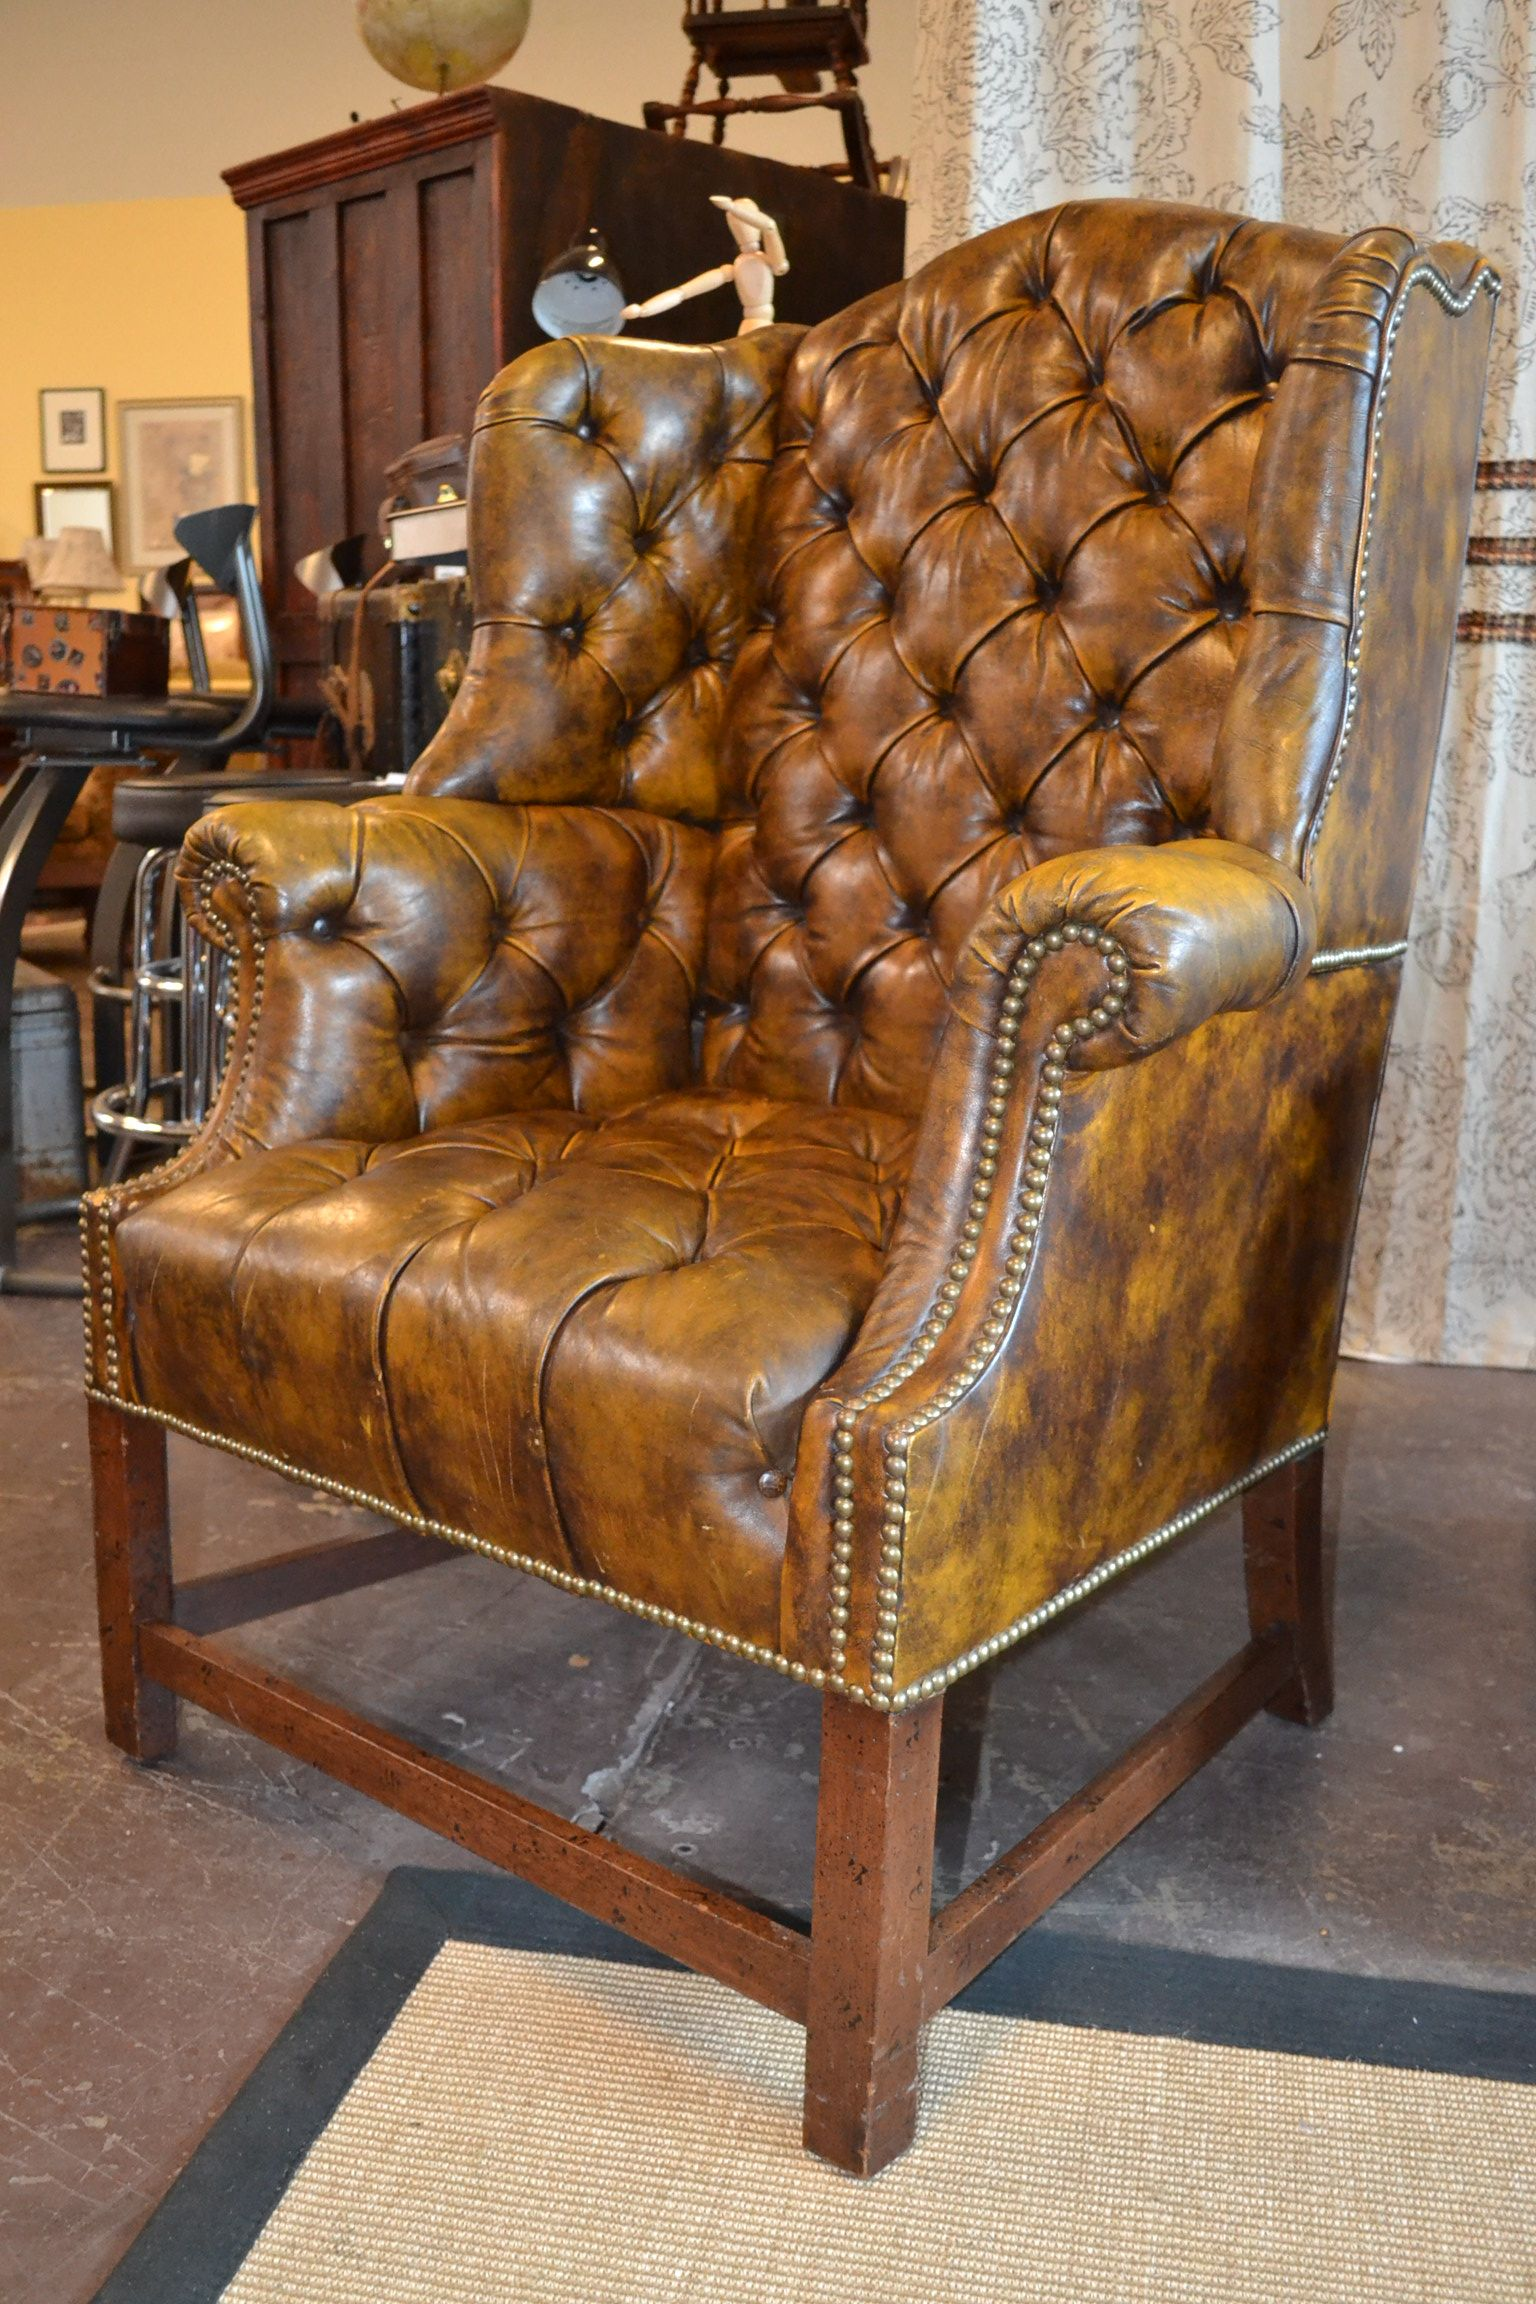 Mottled Leather Hancock Amp Moore Tufted Library Wing Chair